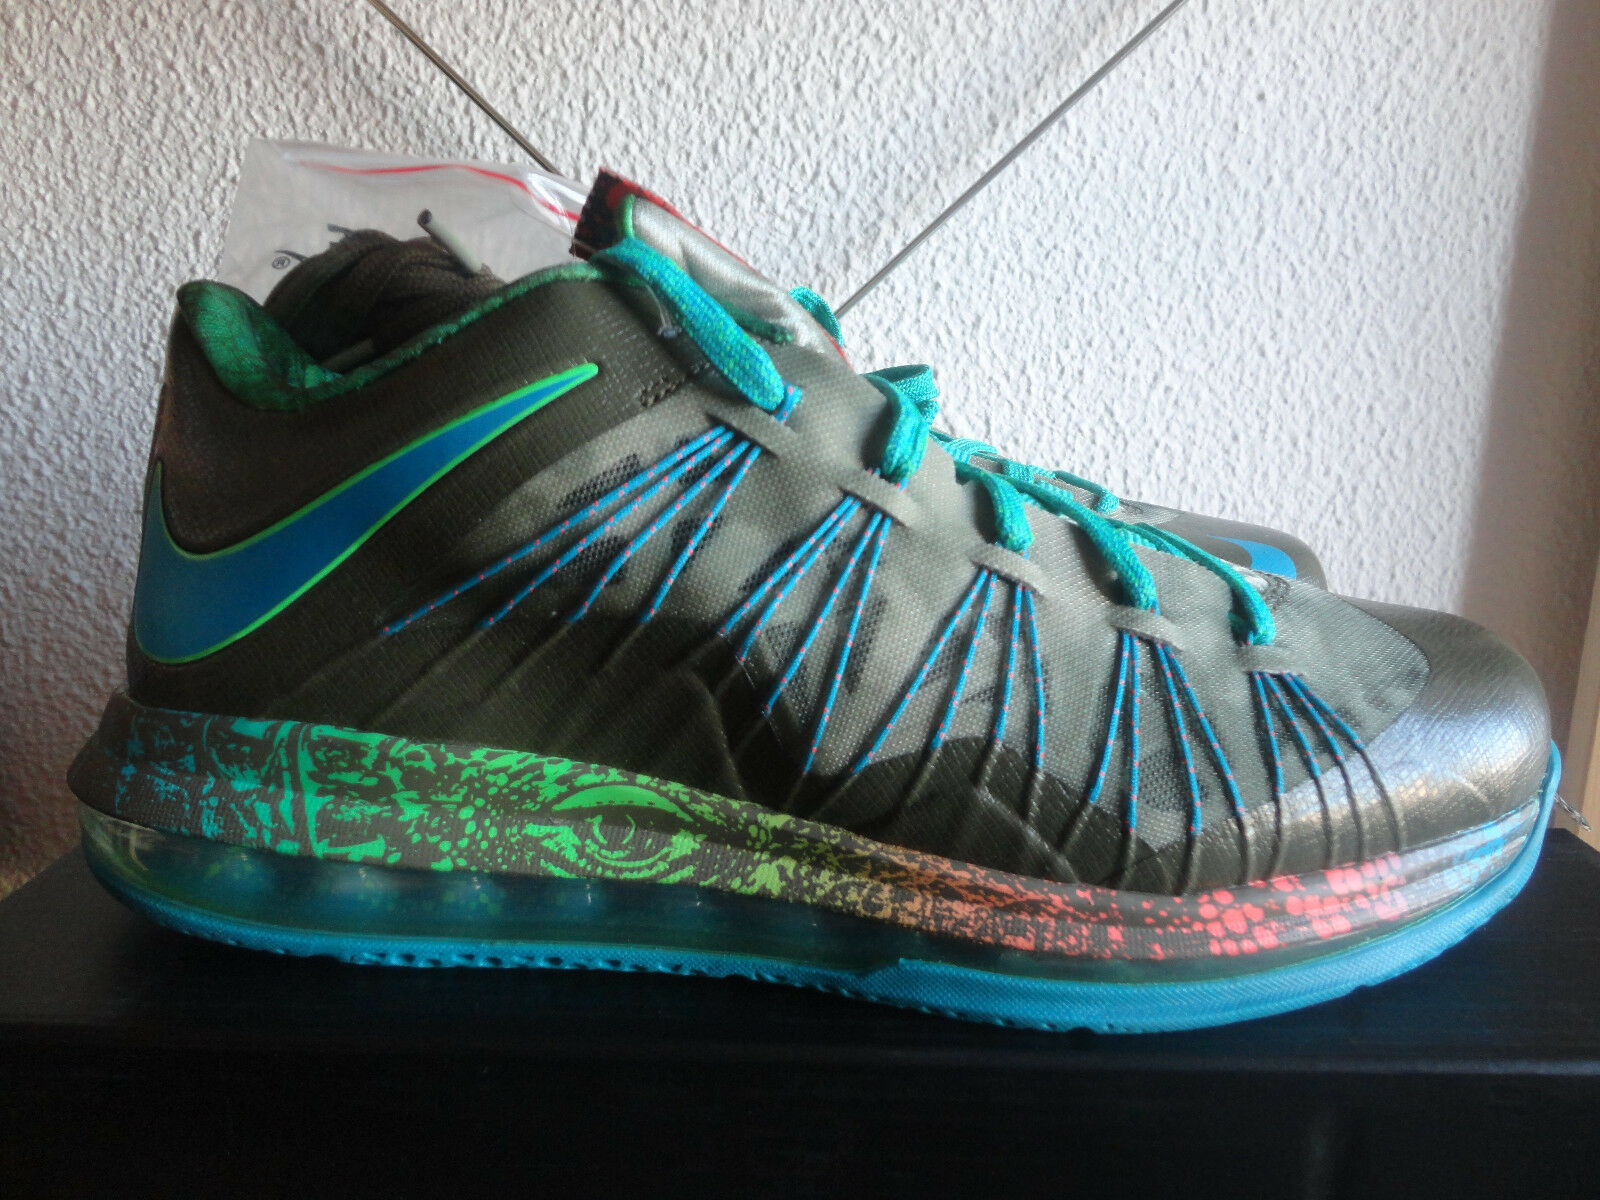 d650b925f4 NIKE AIR MAX LEBRON X 10 LOW SWAMP THING REPTILE DEAD STOCK 579765-301 US10